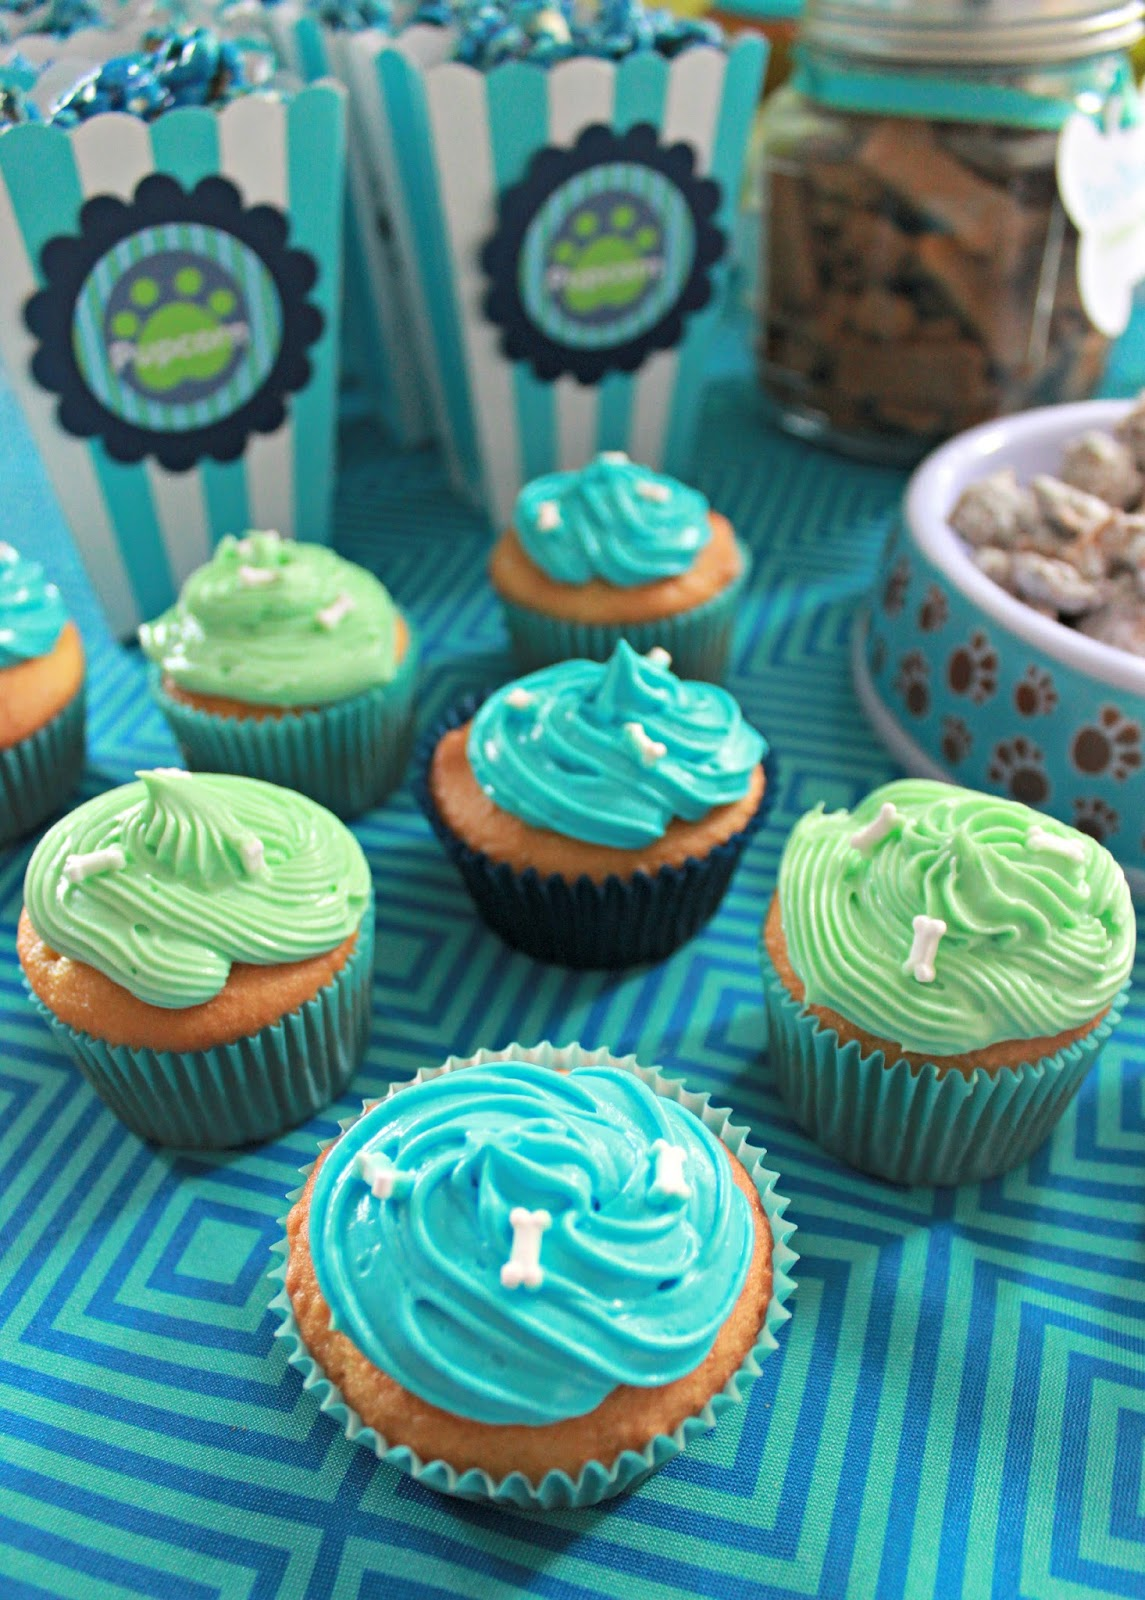 Dog Theme Party Food Ideas Cupcakes